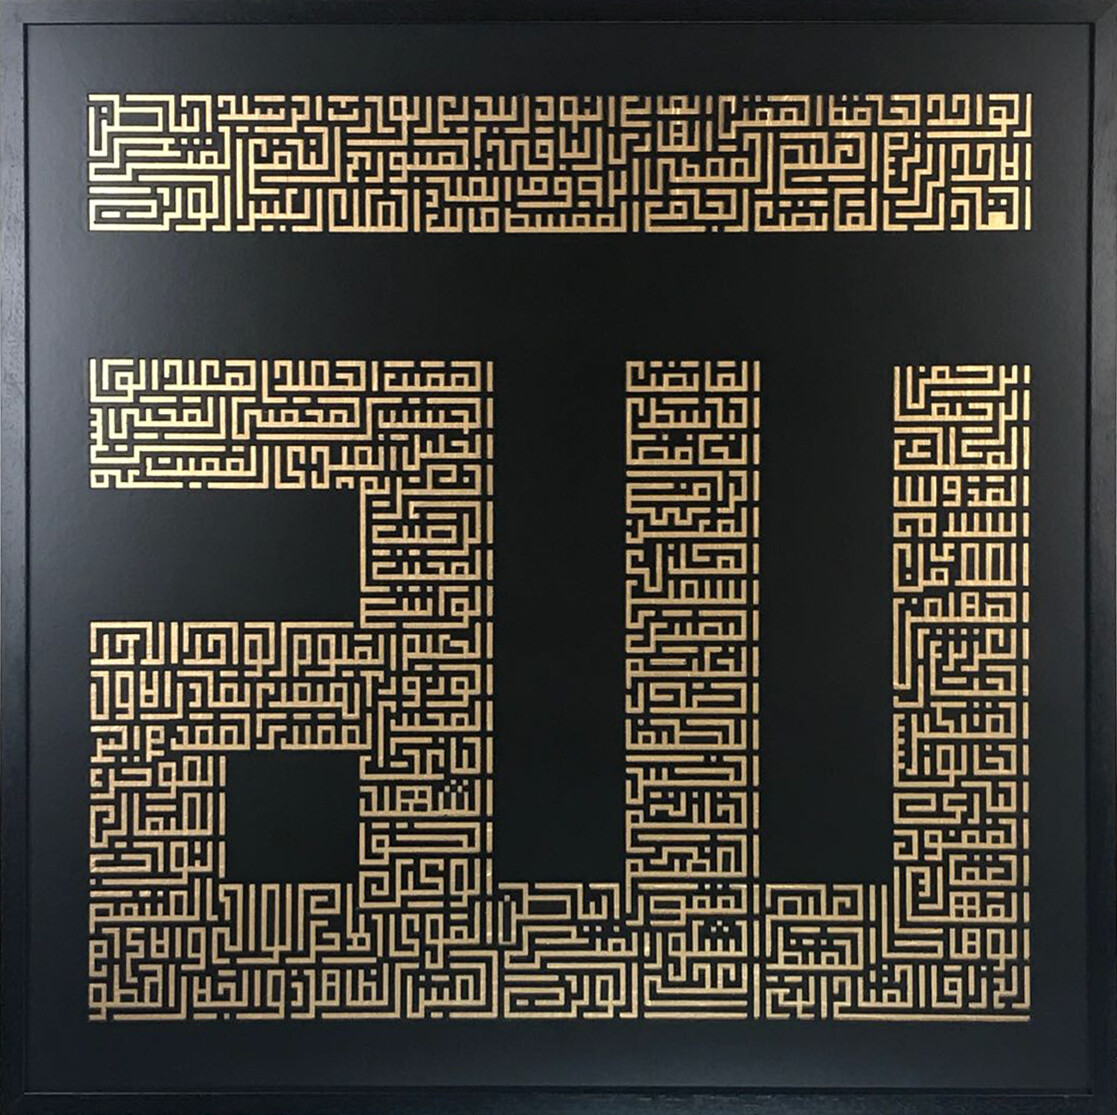 99 Names of Allah Black & Gold Papyrus Kufic Bas Relief 3D Design in a Black frame